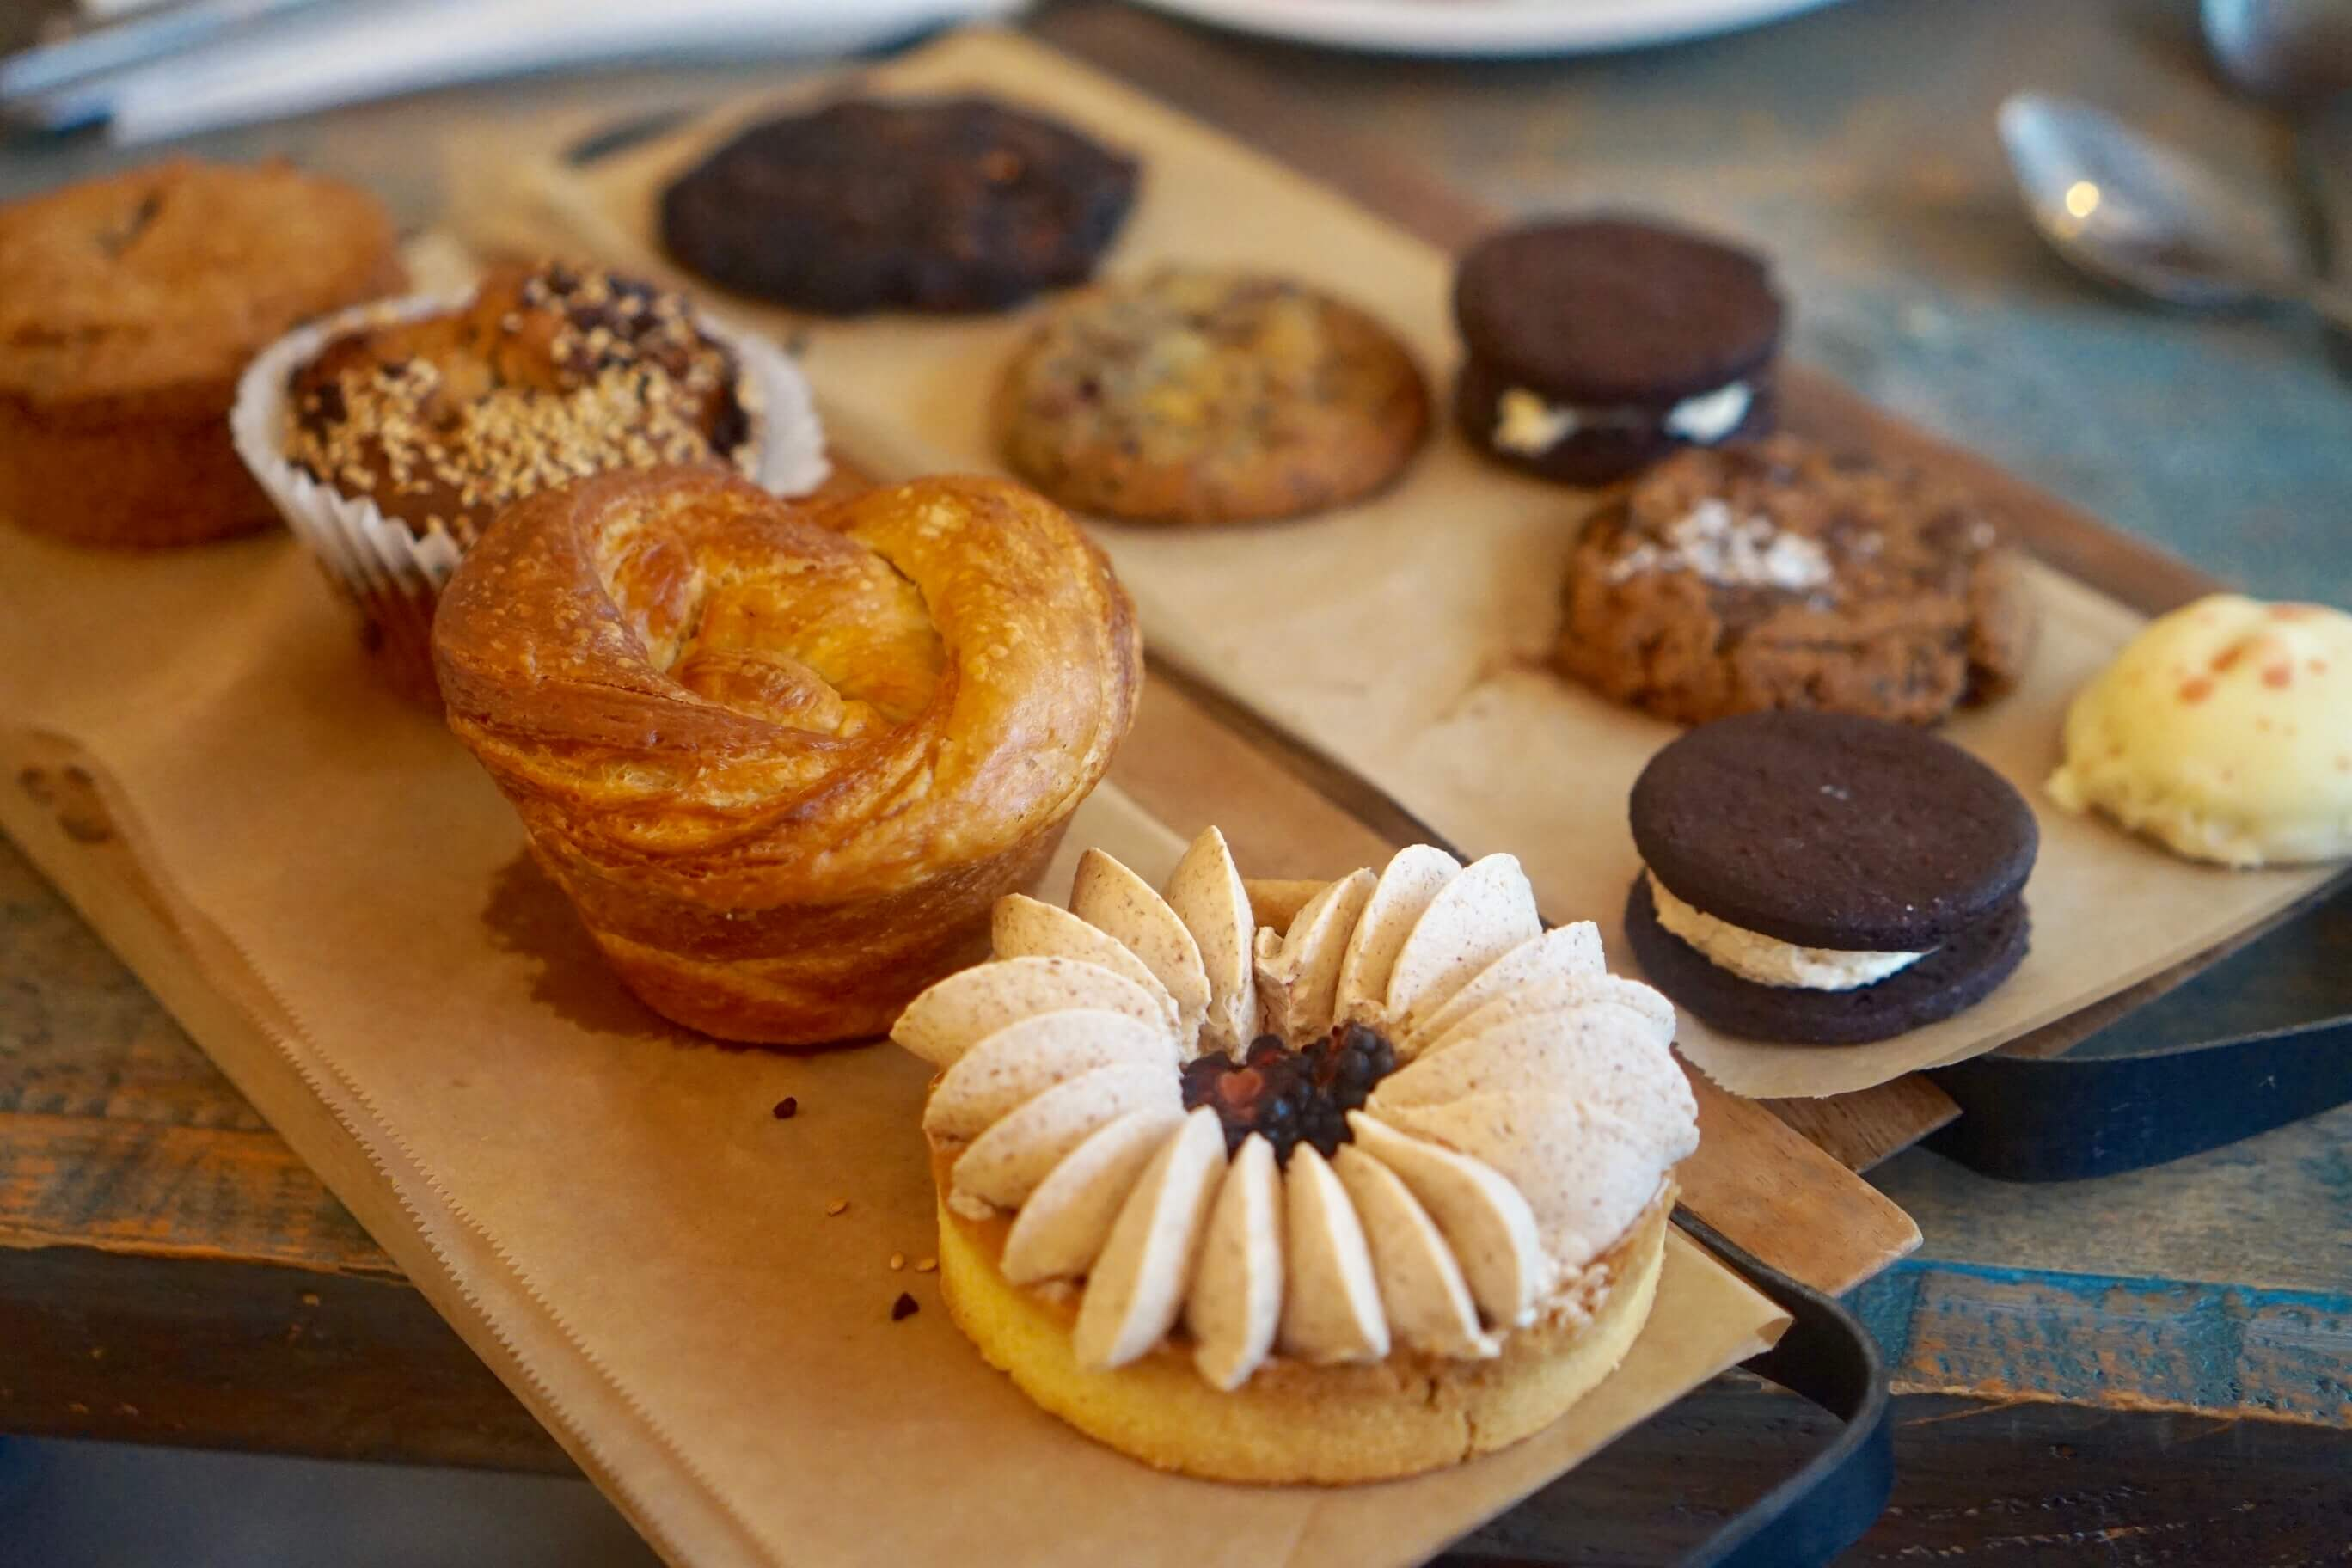 This 'Sweet Genius' of cooking in Long Island City offers something tasty for everyone